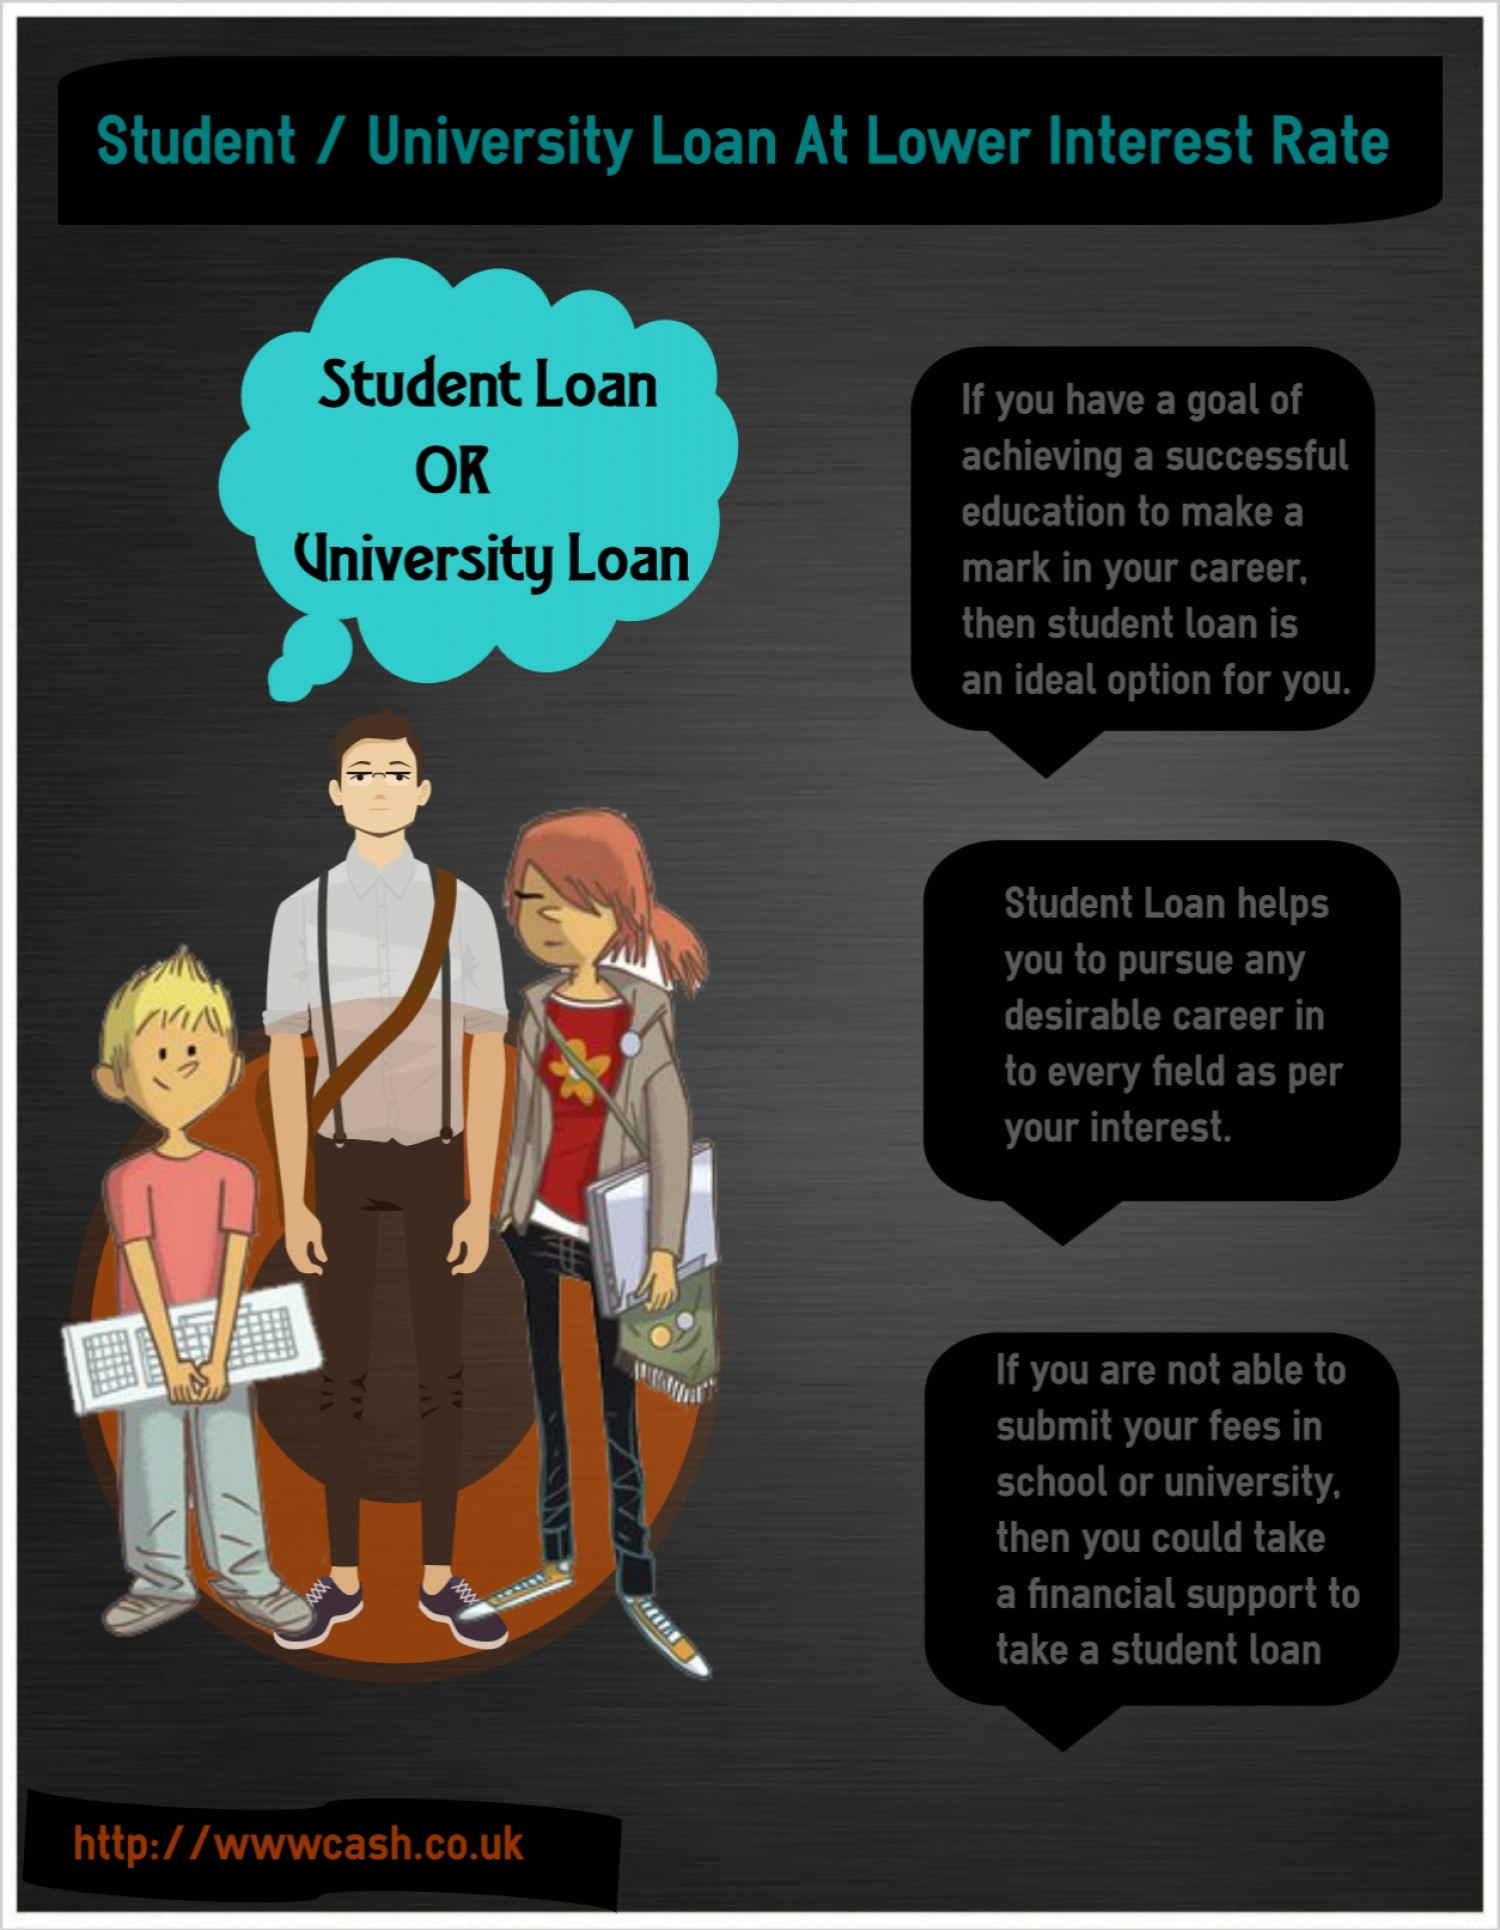 studentuniversity-loan-at-low-interest-r